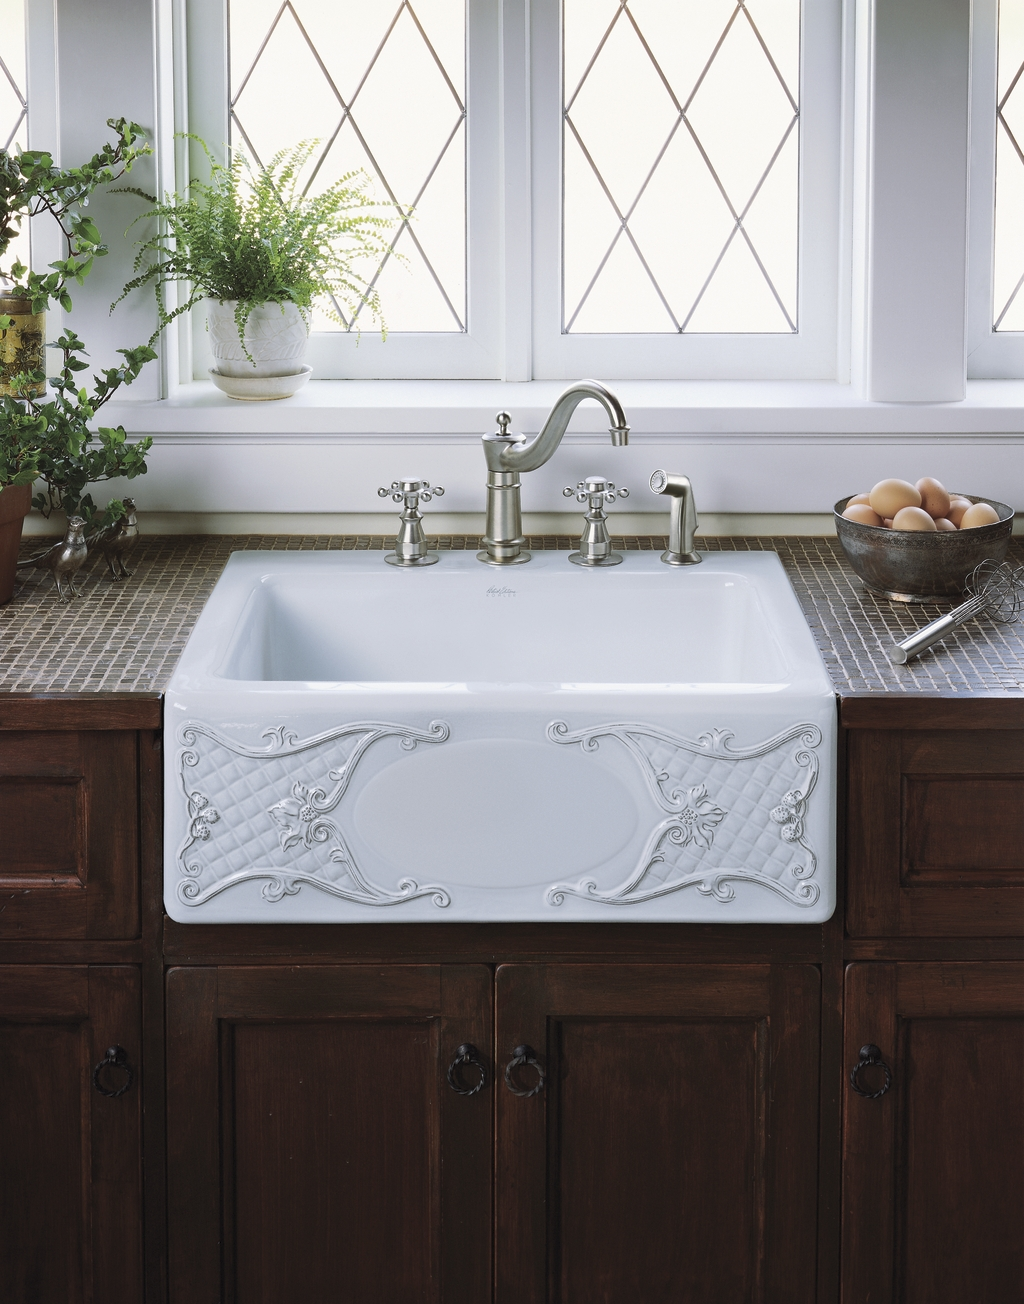 Bib Sink : and cast iron are still the most popular types of apron front sinks ...